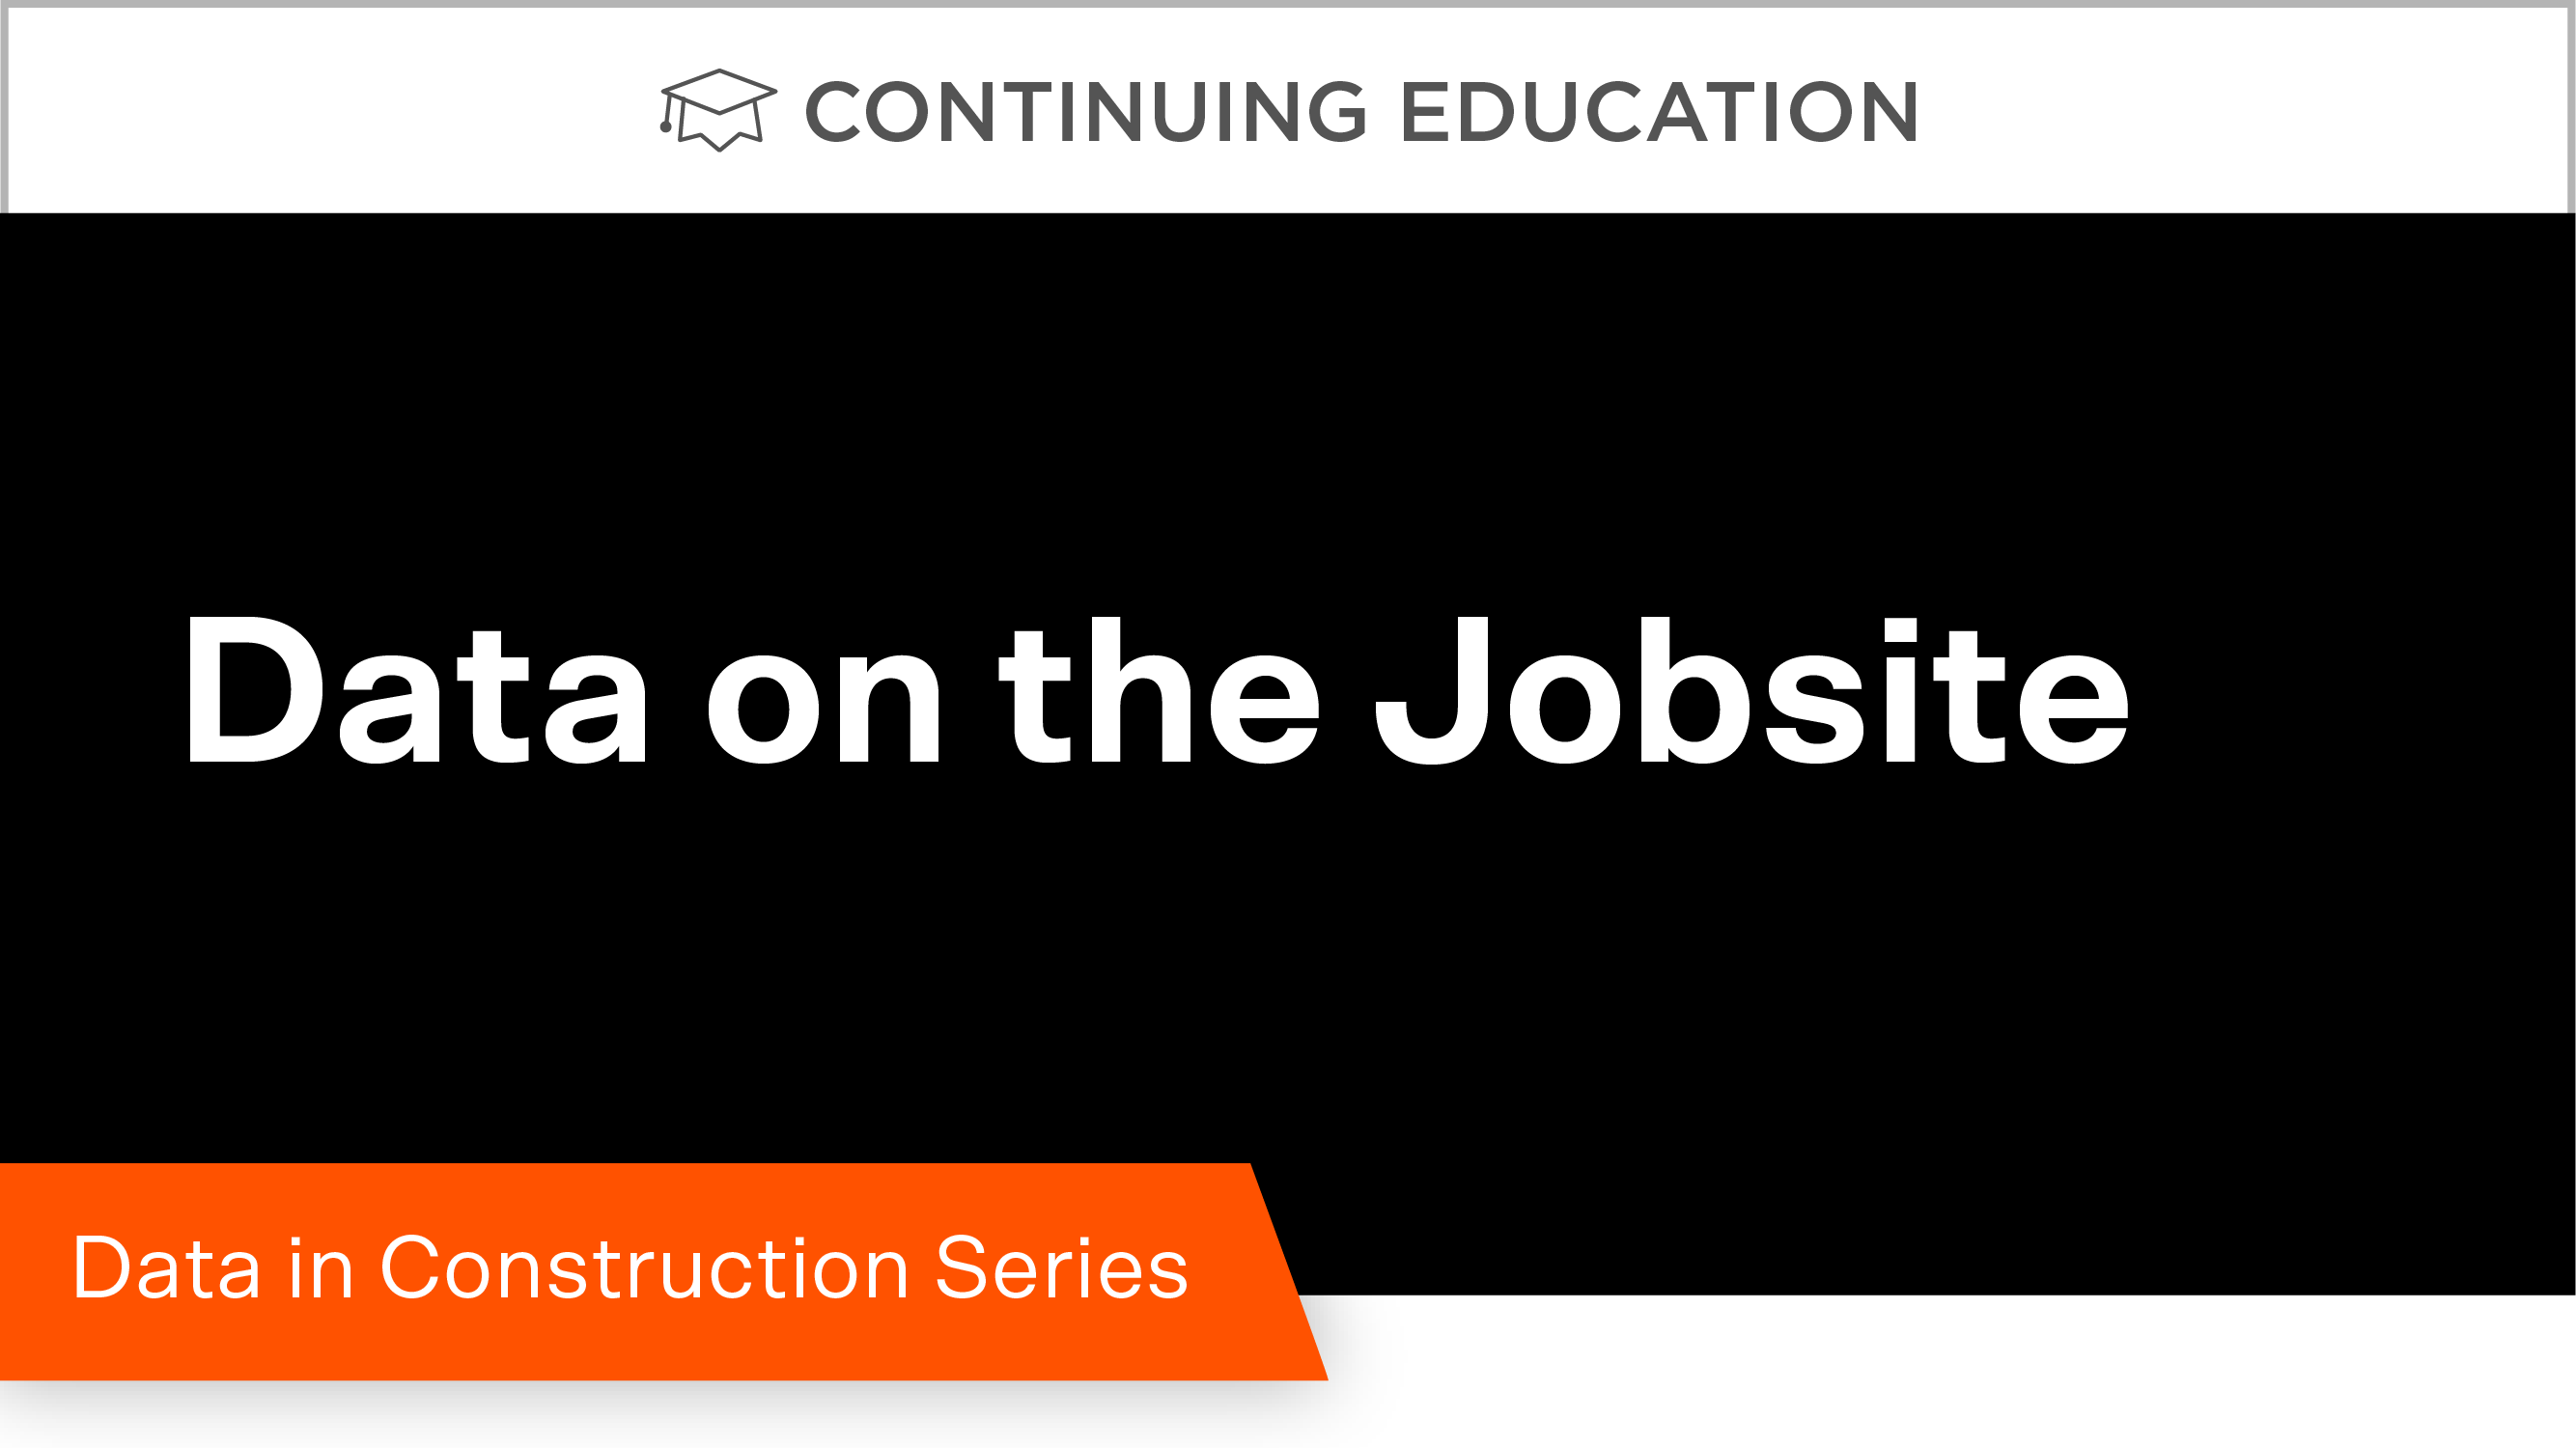 Data in Construction Part 4: Data on the Jobsite